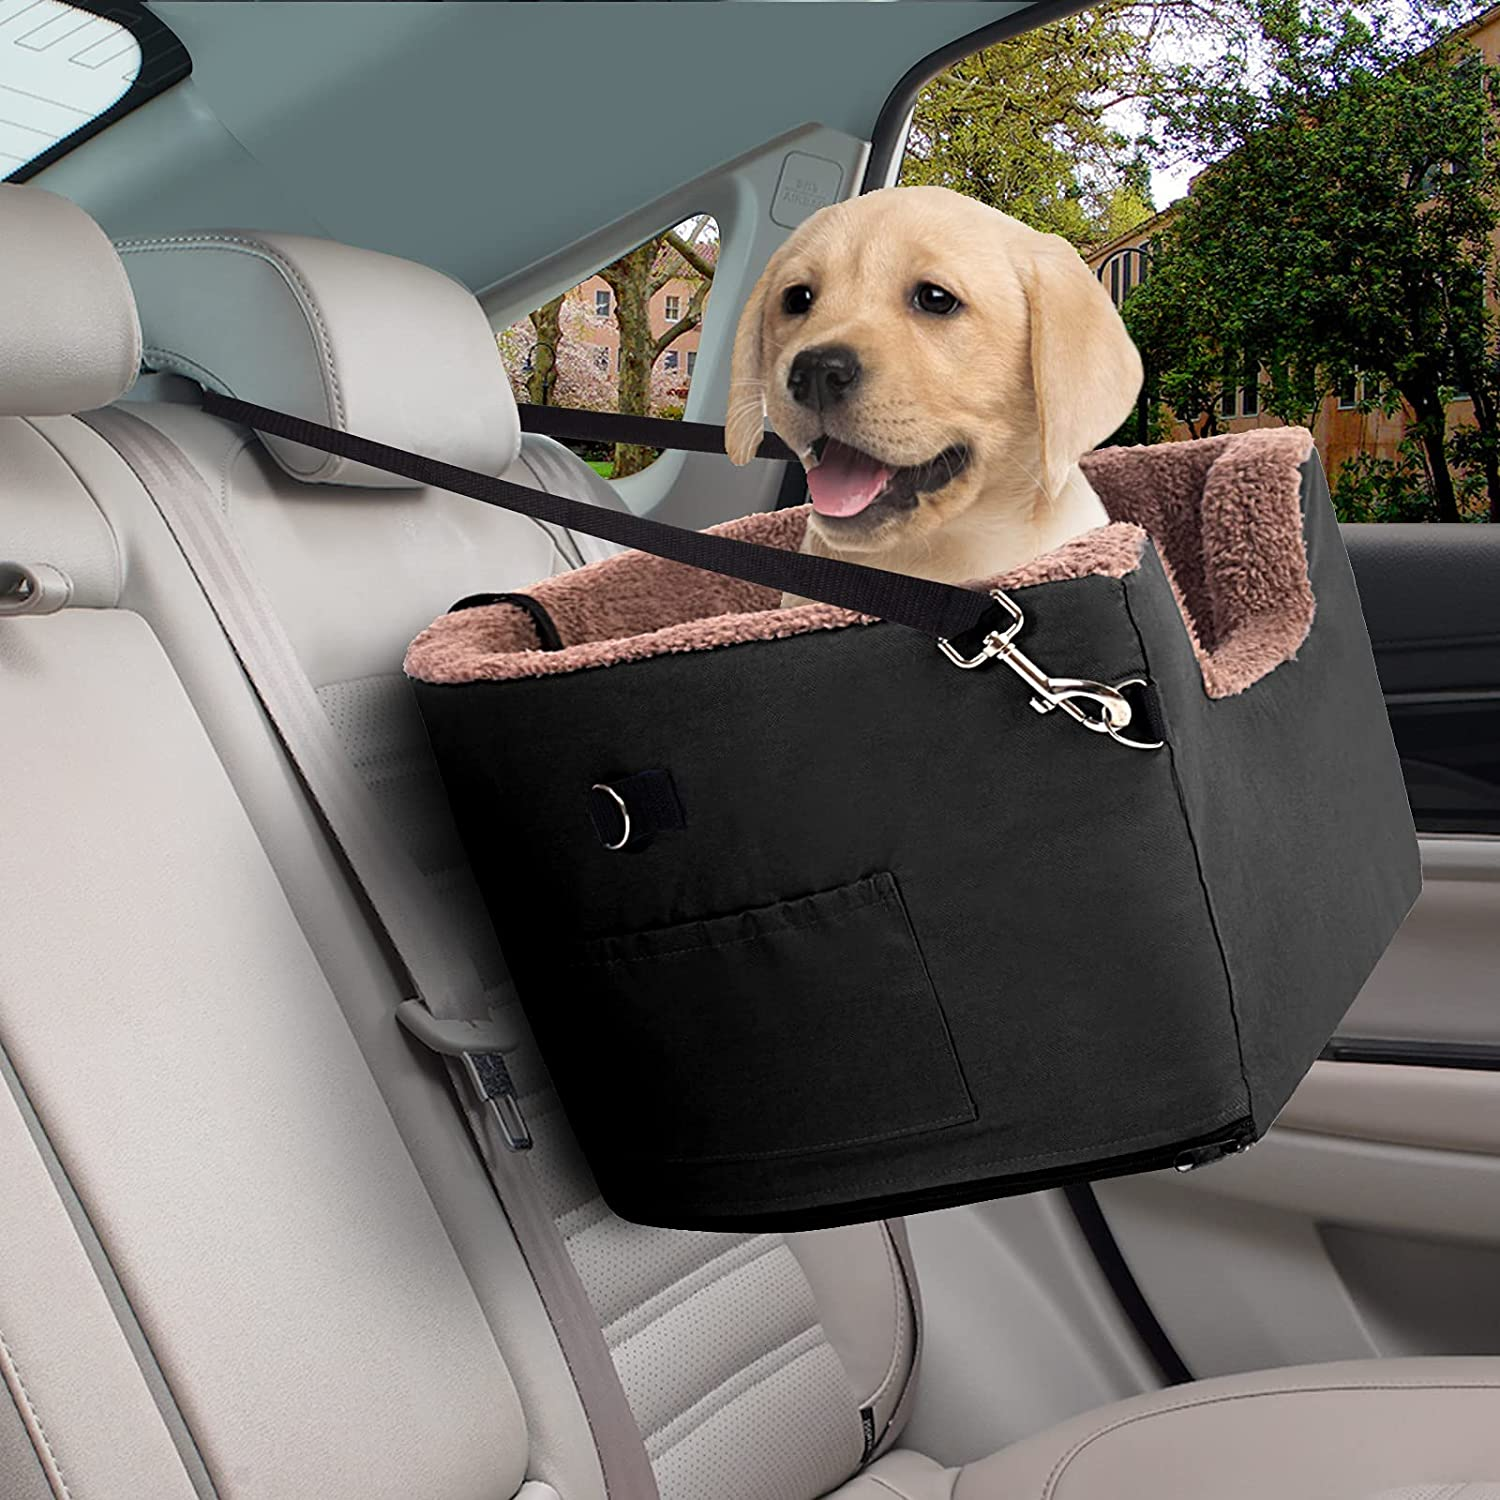 TR pet Dog Booster Seat Fees free!! Front for Elevat car Regular discount Car